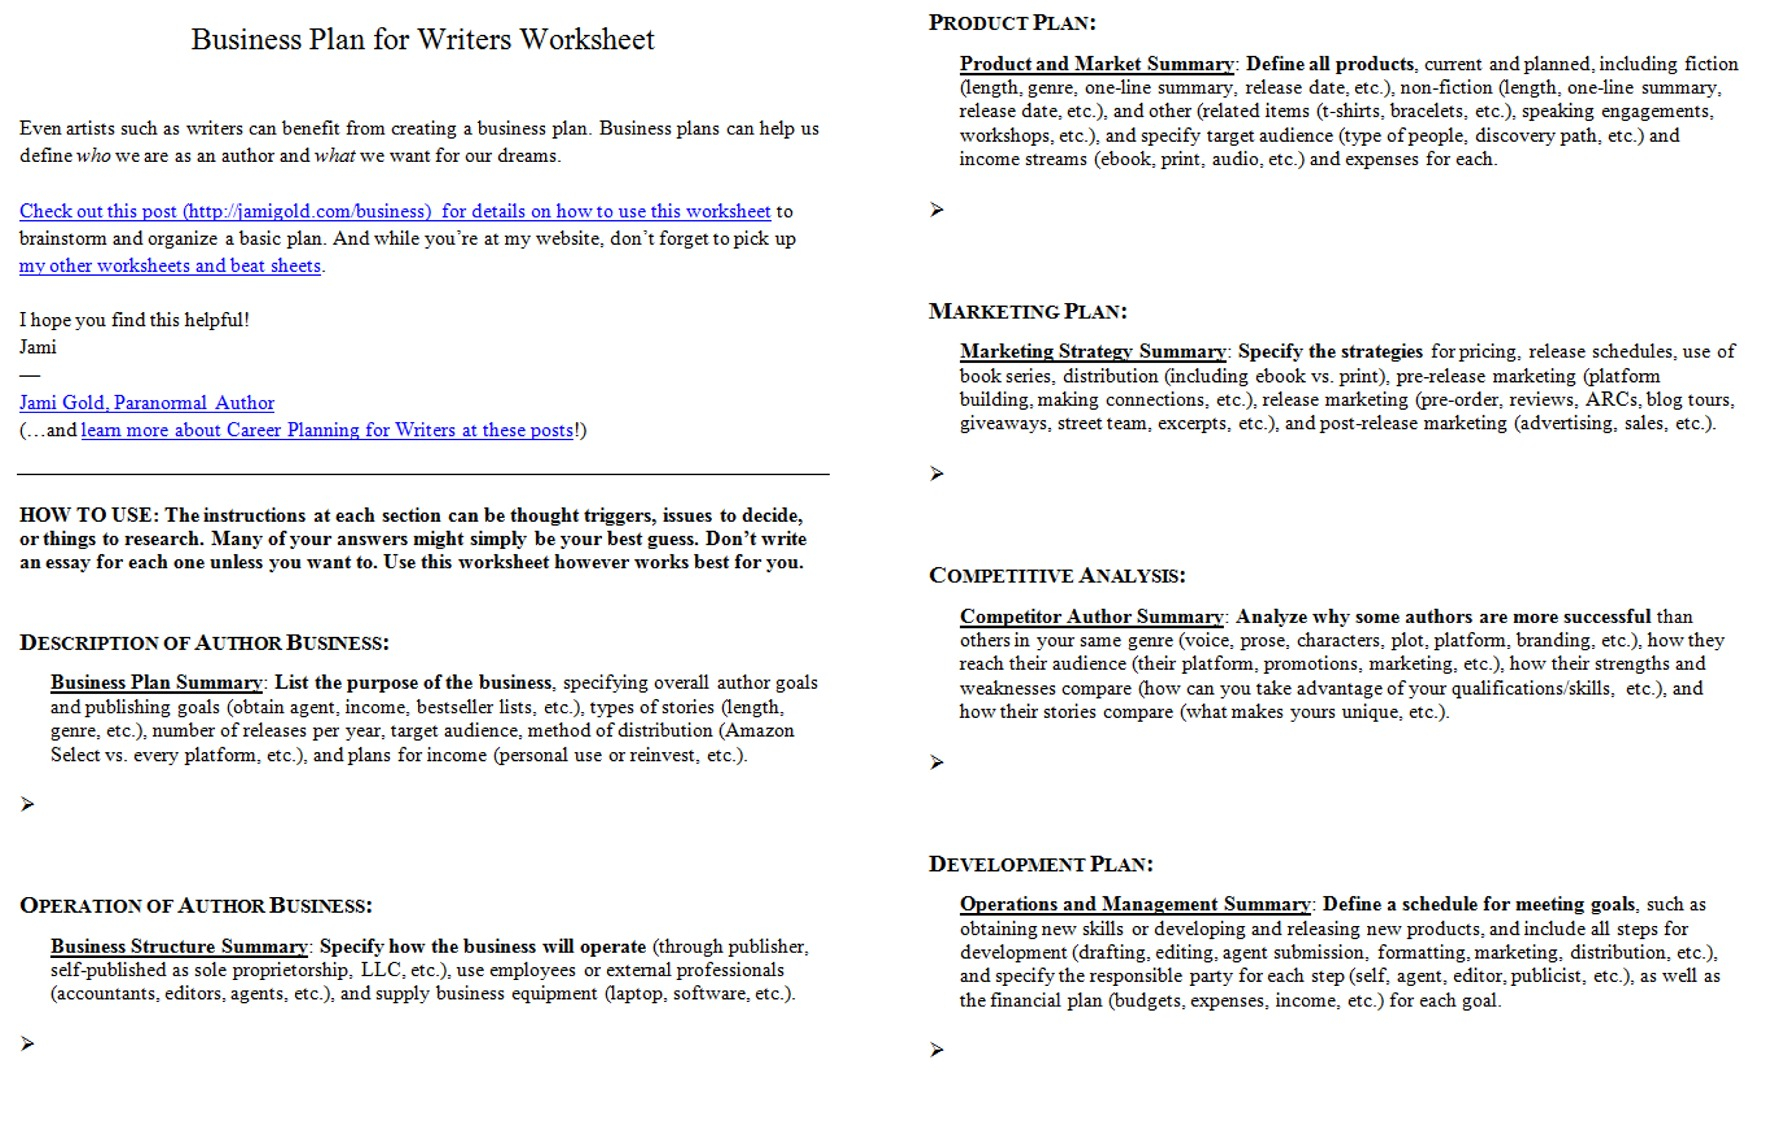 Weirdmailus  Winsome Worksheets For Writers  Jami Gold Paranormal Author With Licious Screen Shot Of Both Pages Of The Business Plan For Writers Worksheet With Archaic Rabbit Proof Fence Worksheet Also Personal Pronouns Worksheet For Grade  In Addition Multiplication Worksheets  And  Times Tables And Fun Maths Worksheets Ks As Well As Reading Comprehension Ks Worksheets Additionally Exercise English Grammar Worksheet From Jamigoldcom With Weirdmailus  Licious Worksheets For Writers  Jami Gold Paranormal Author With Archaic Screen Shot Of Both Pages Of The Business Plan For Writers Worksheet And Winsome Rabbit Proof Fence Worksheet Also Personal Pronouns Worksheet For Grade  In Addition Multiplication Worksheets  And  Times Tables From Jamigoldcom